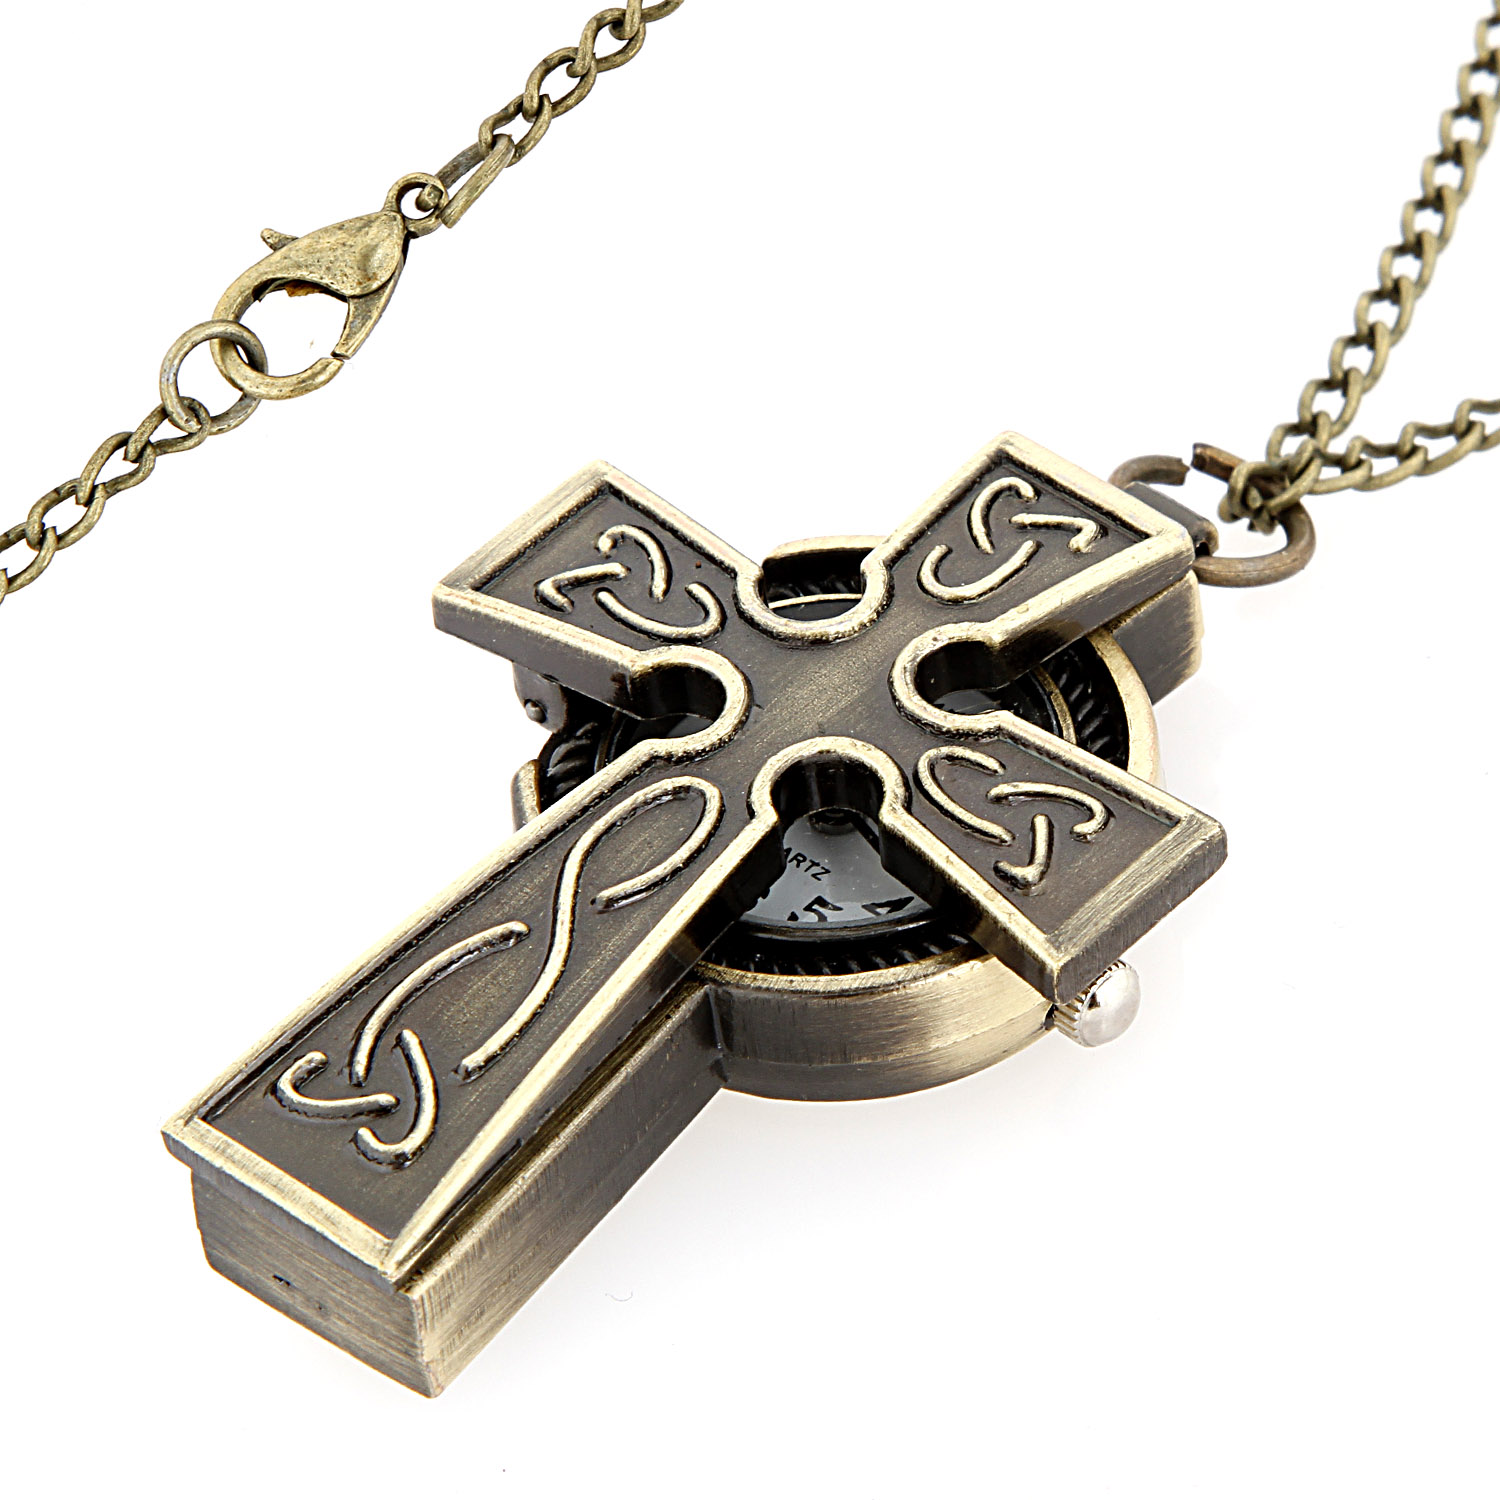 Steel Key and Goldtone Shield with Cross Pendant with Leather Necklace 00KB6G04BF